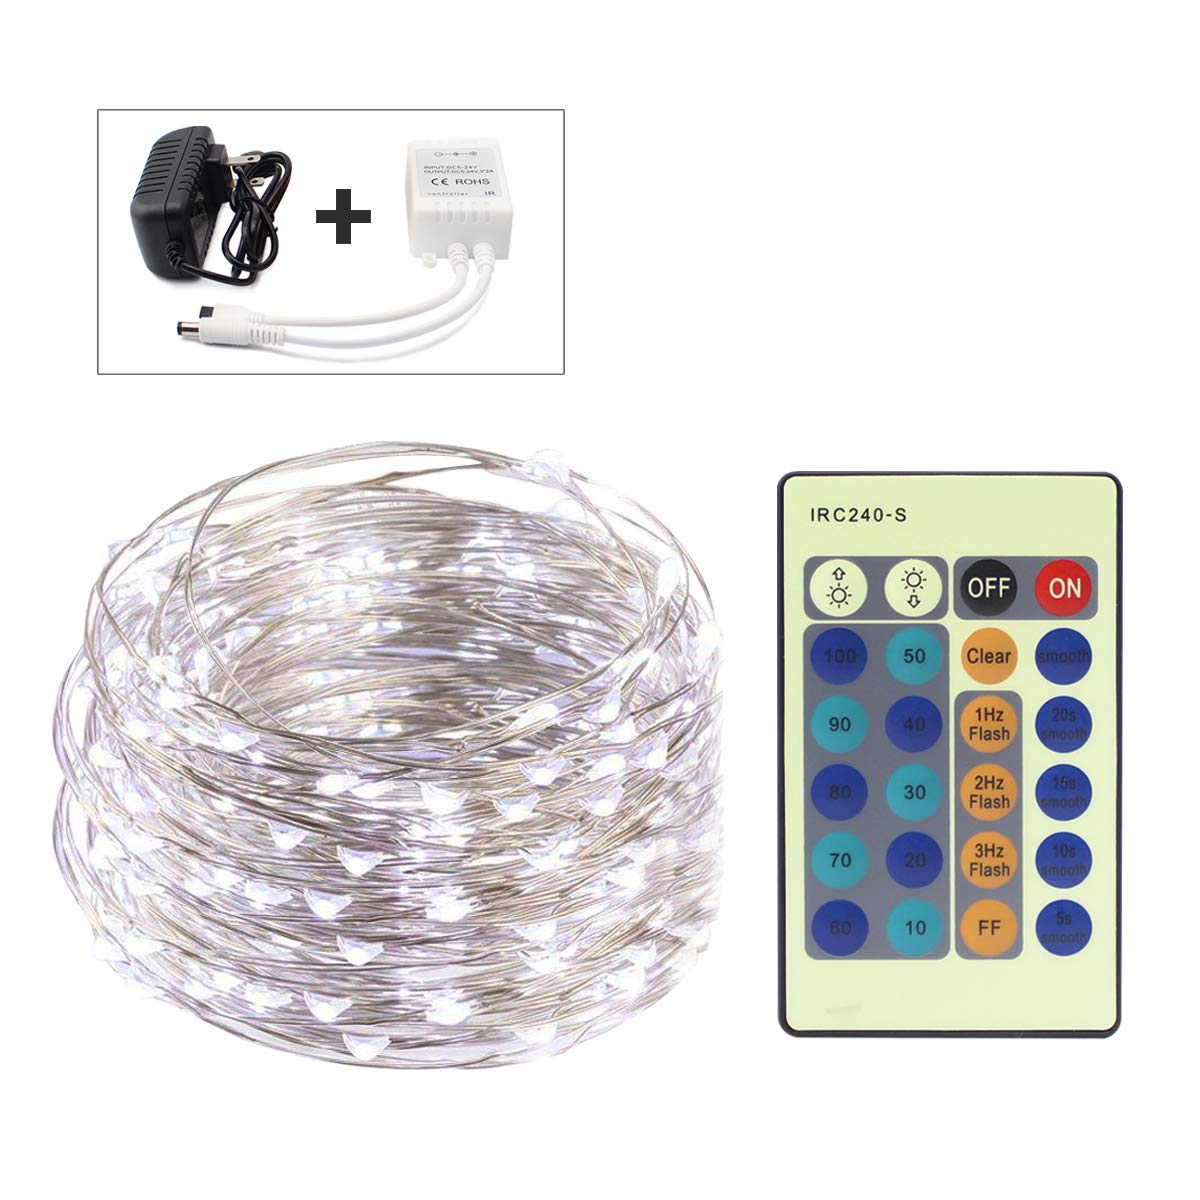 FUNHOUR LED String Lights 33ft 100LED Silver Wire Dimmable with Remote Control Xmas Waterproof Decorative Fairy LED Strip Lights for Christmas Outdoor,Wedding,Home,Party,Patio,Garden,Yard(Cool White) by FUNHOUR